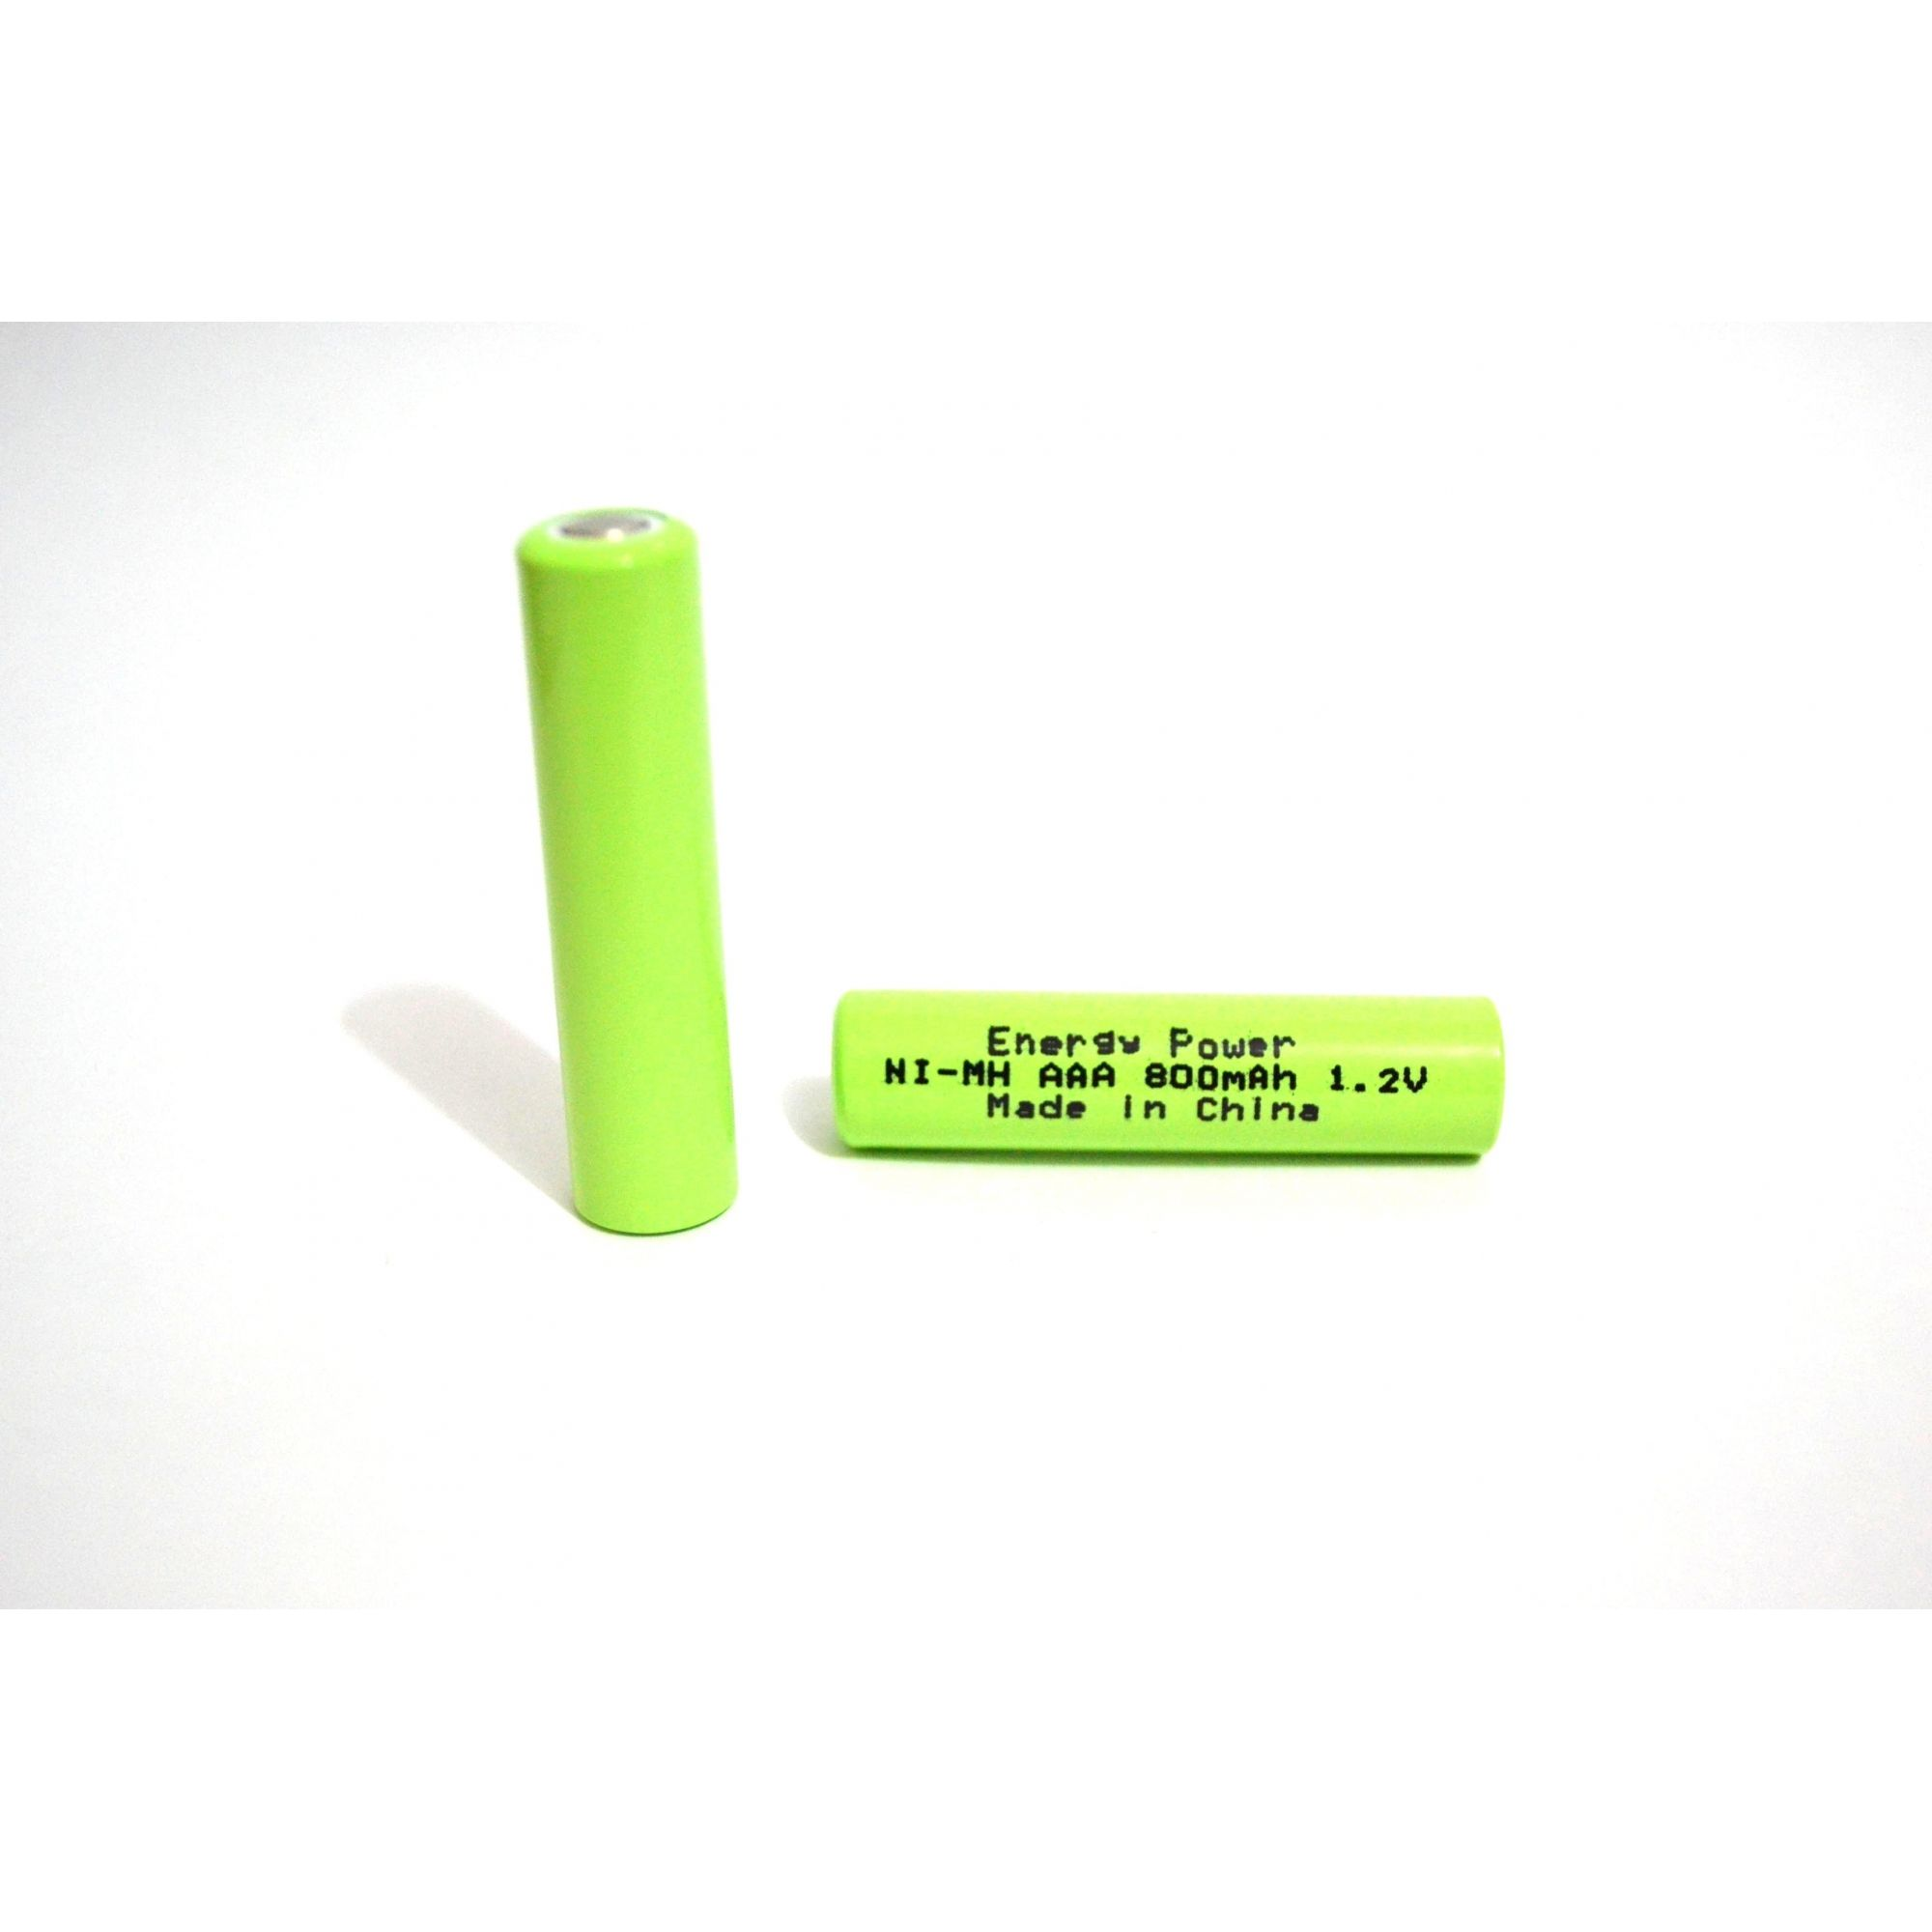 BATERIA ENERGY POWER  AAA 800MAH 1,2V NI-MH